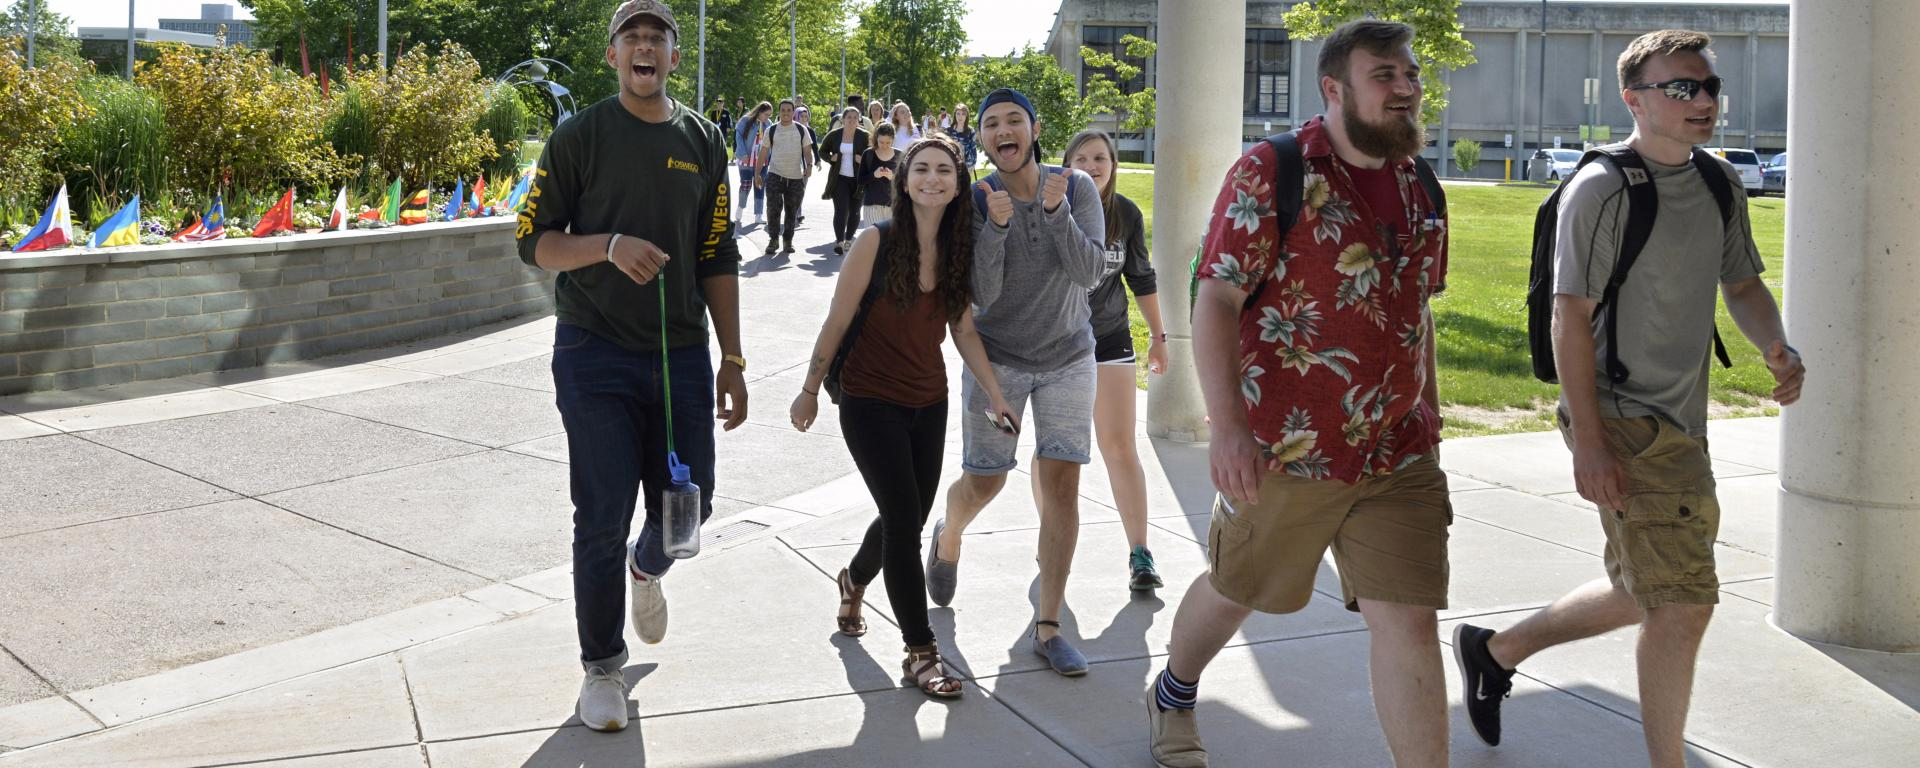 Laker Leaders walking into Marano Campus Center during Orientation. The Laker Leaders are looking towards the camera smiling. It is a bright and sunny day